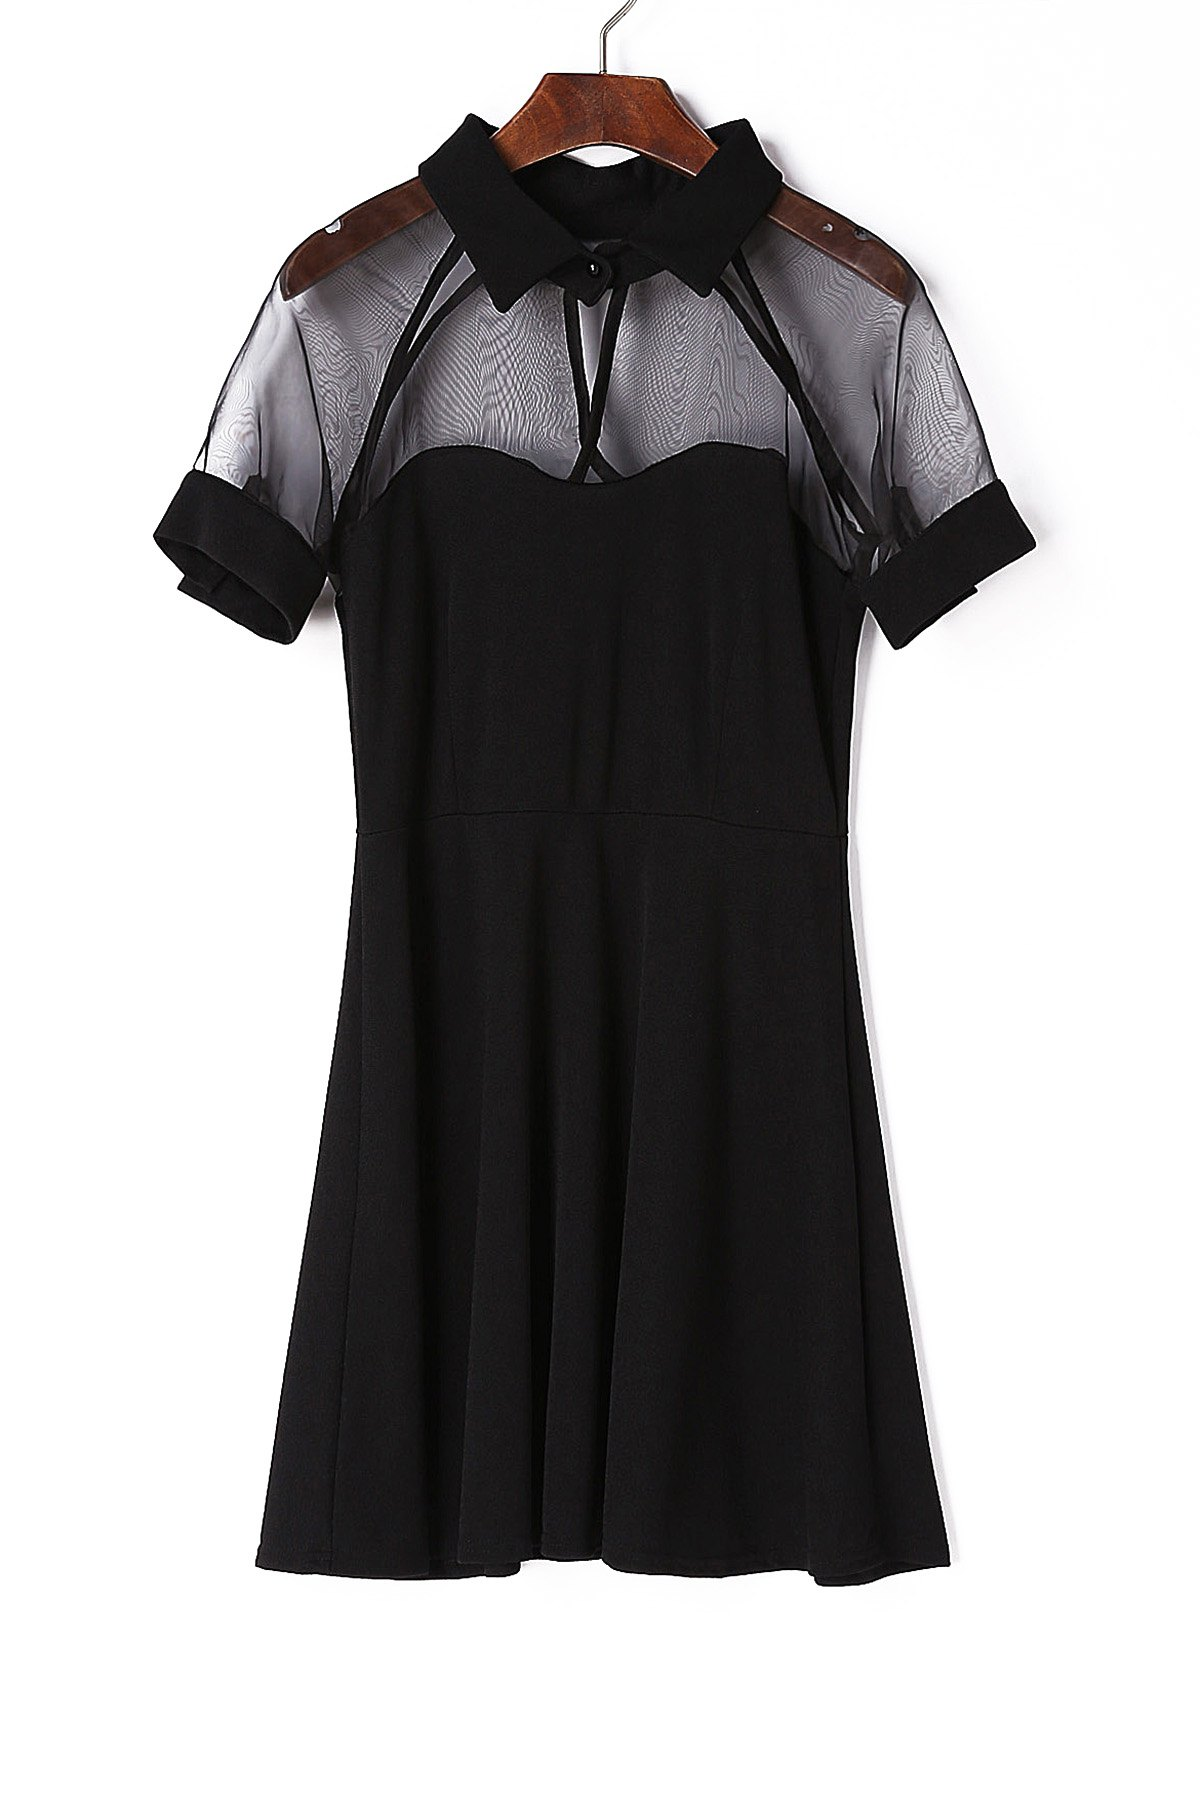 Best Stylish Black Flat Collar Short Sleeve See-Through Dress For Women